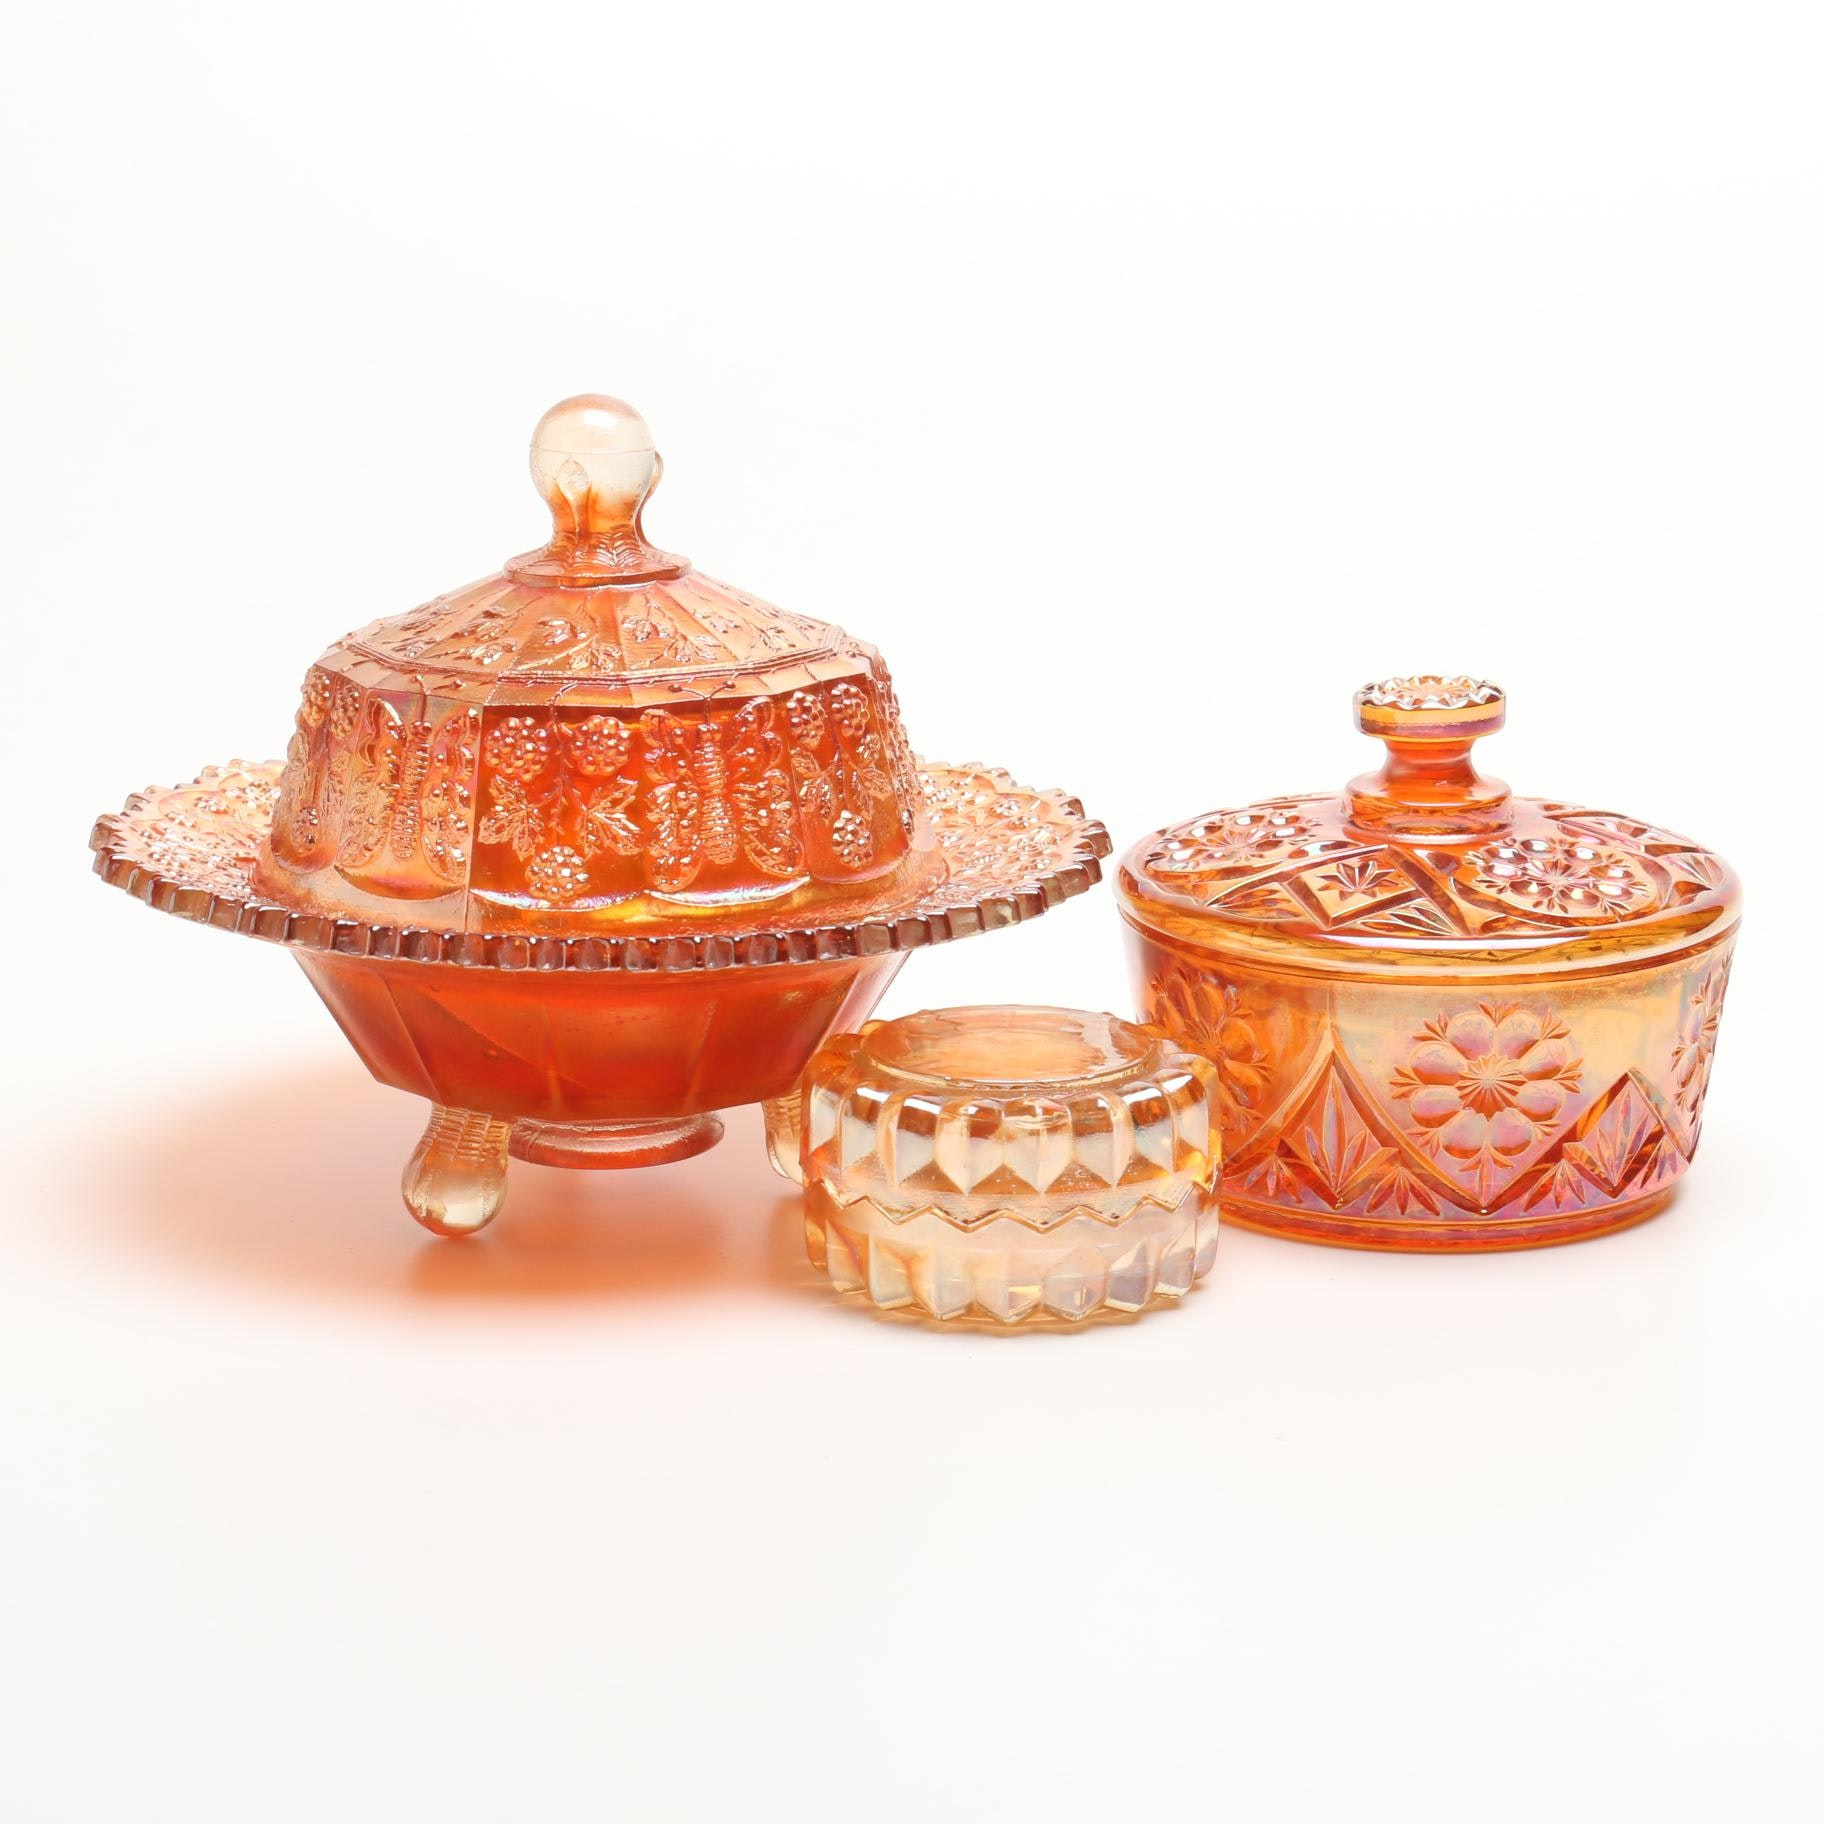 Lidded Marigold Carnival Glass Dishes